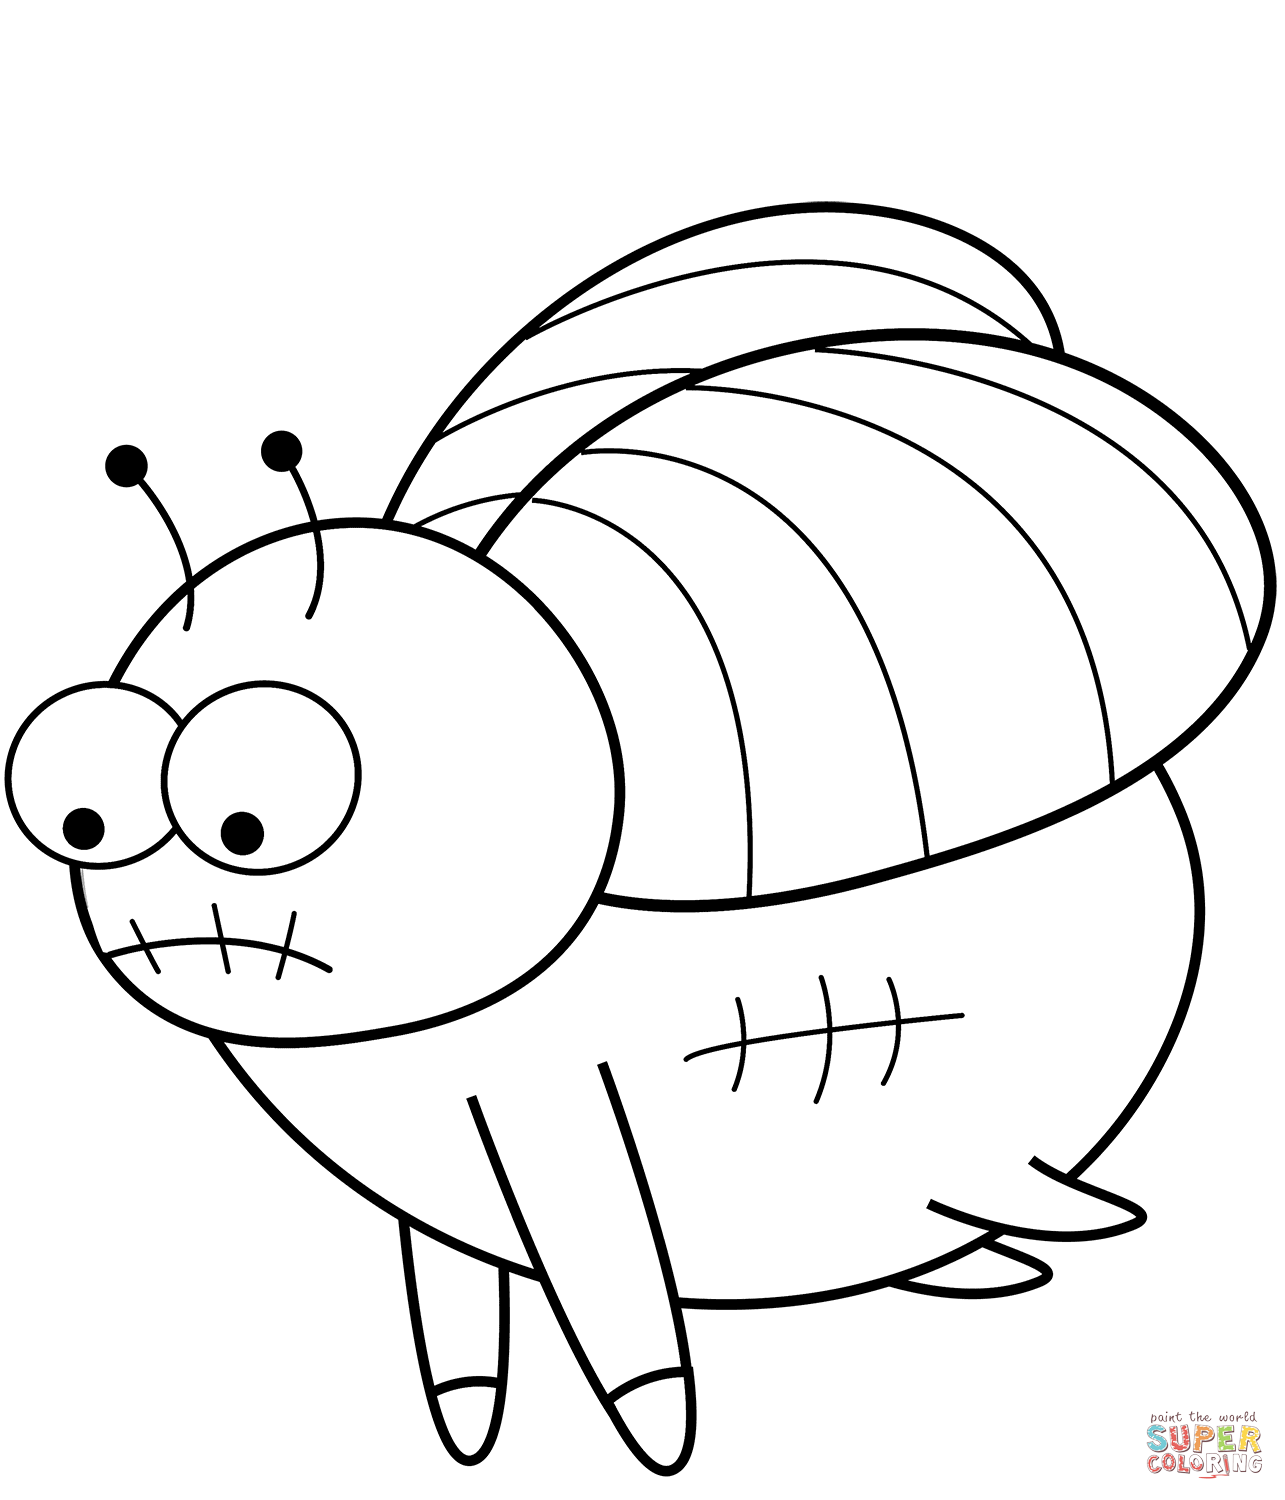 Cartoon Fly Coloring Page